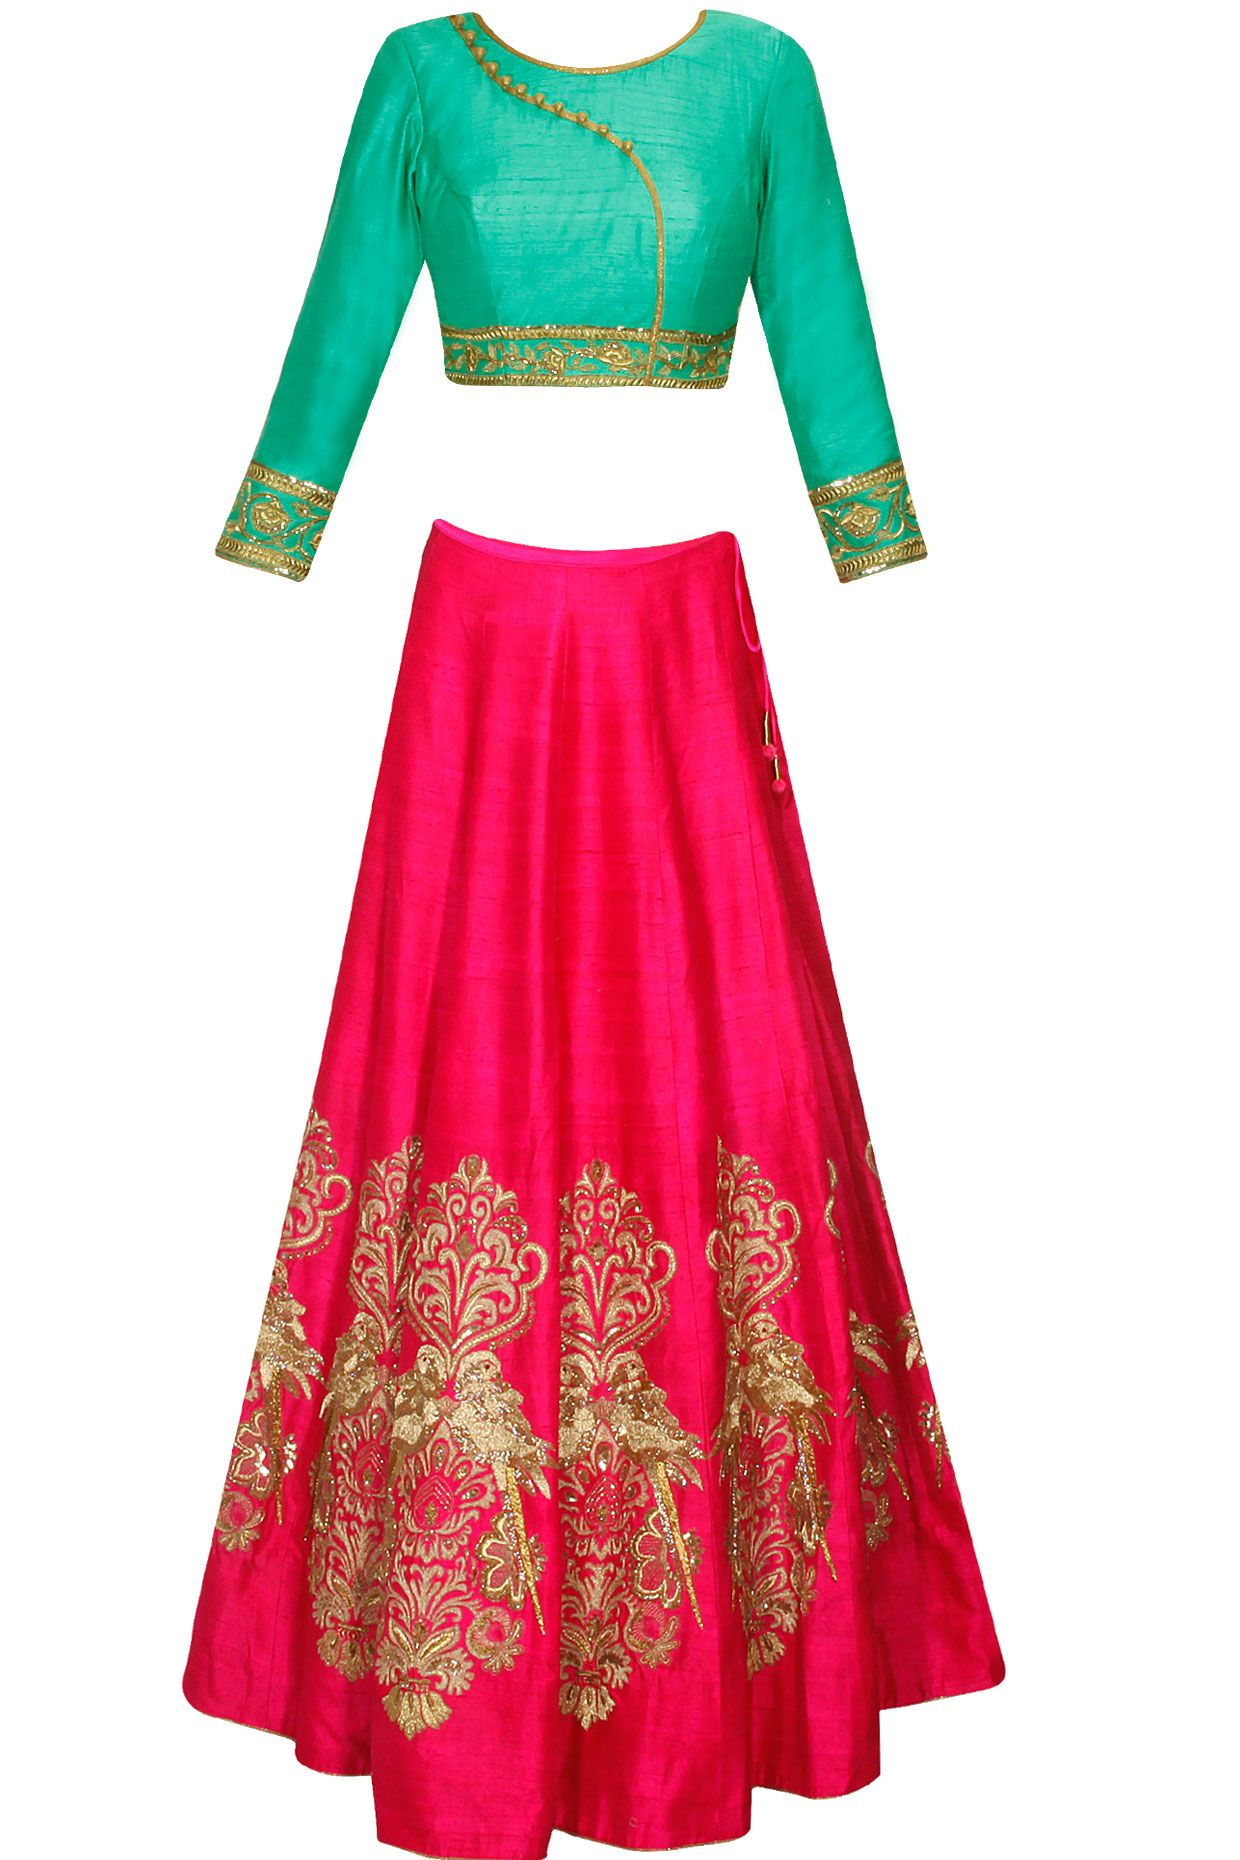 Red Embroidered Motifs Lehenga With Green Blouse Available Only At